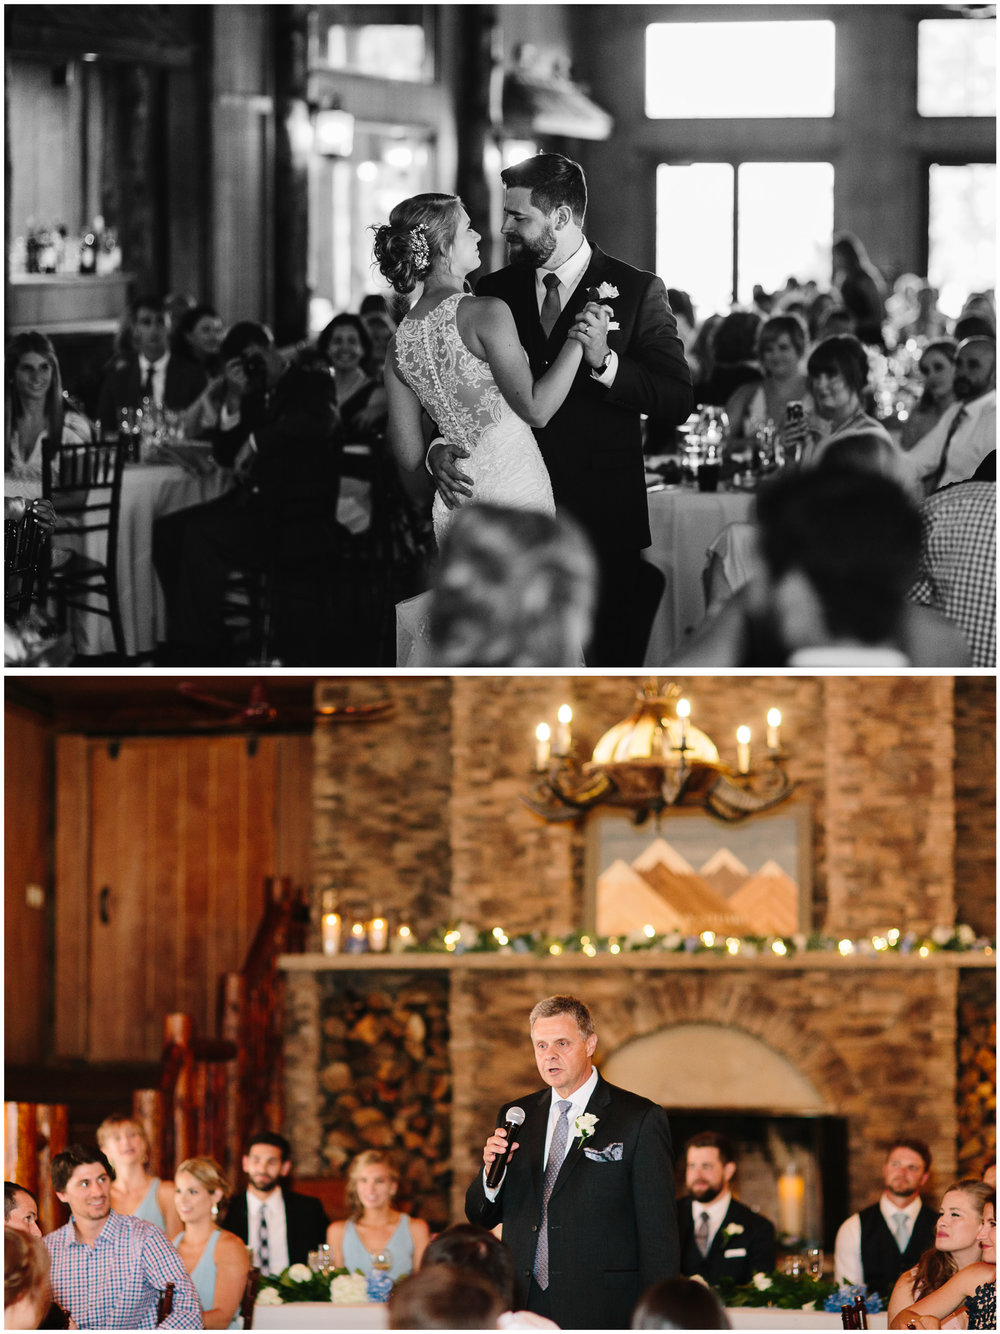 Spruce_Mountain_Ranch_Wedding_58.jpg